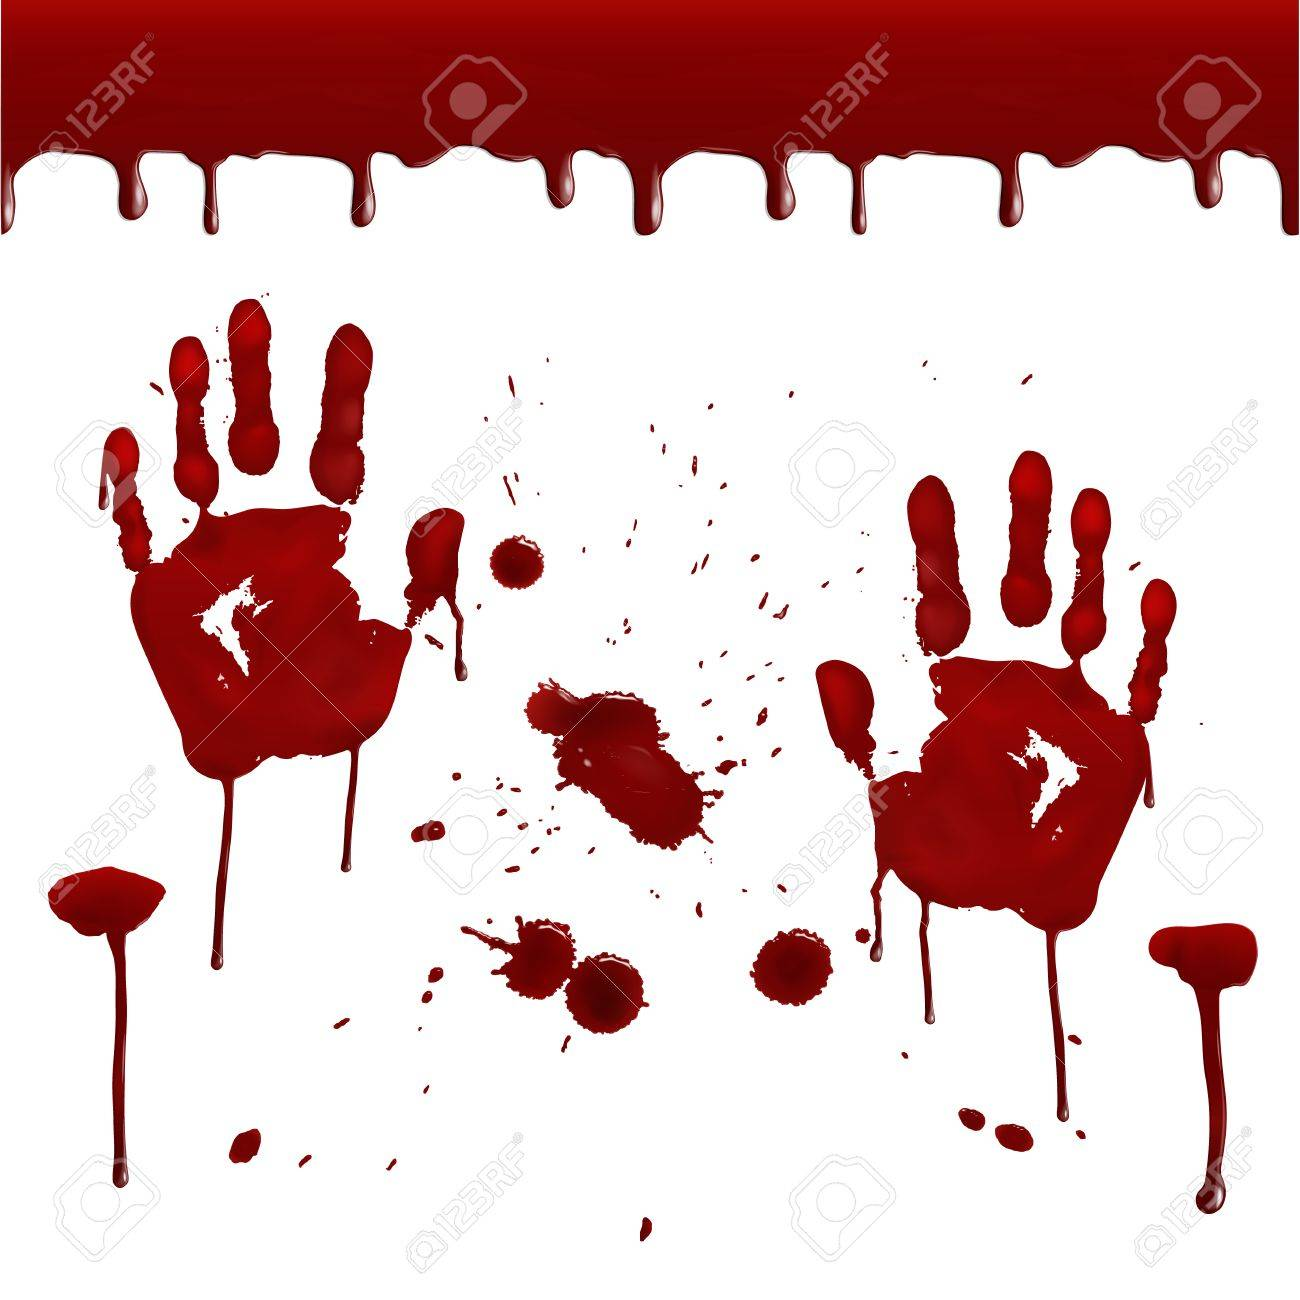 hight resolution of set of realistic bloody prints seamless pattern of dripping blood drops splashes prints of the right and left hands design for posters banners